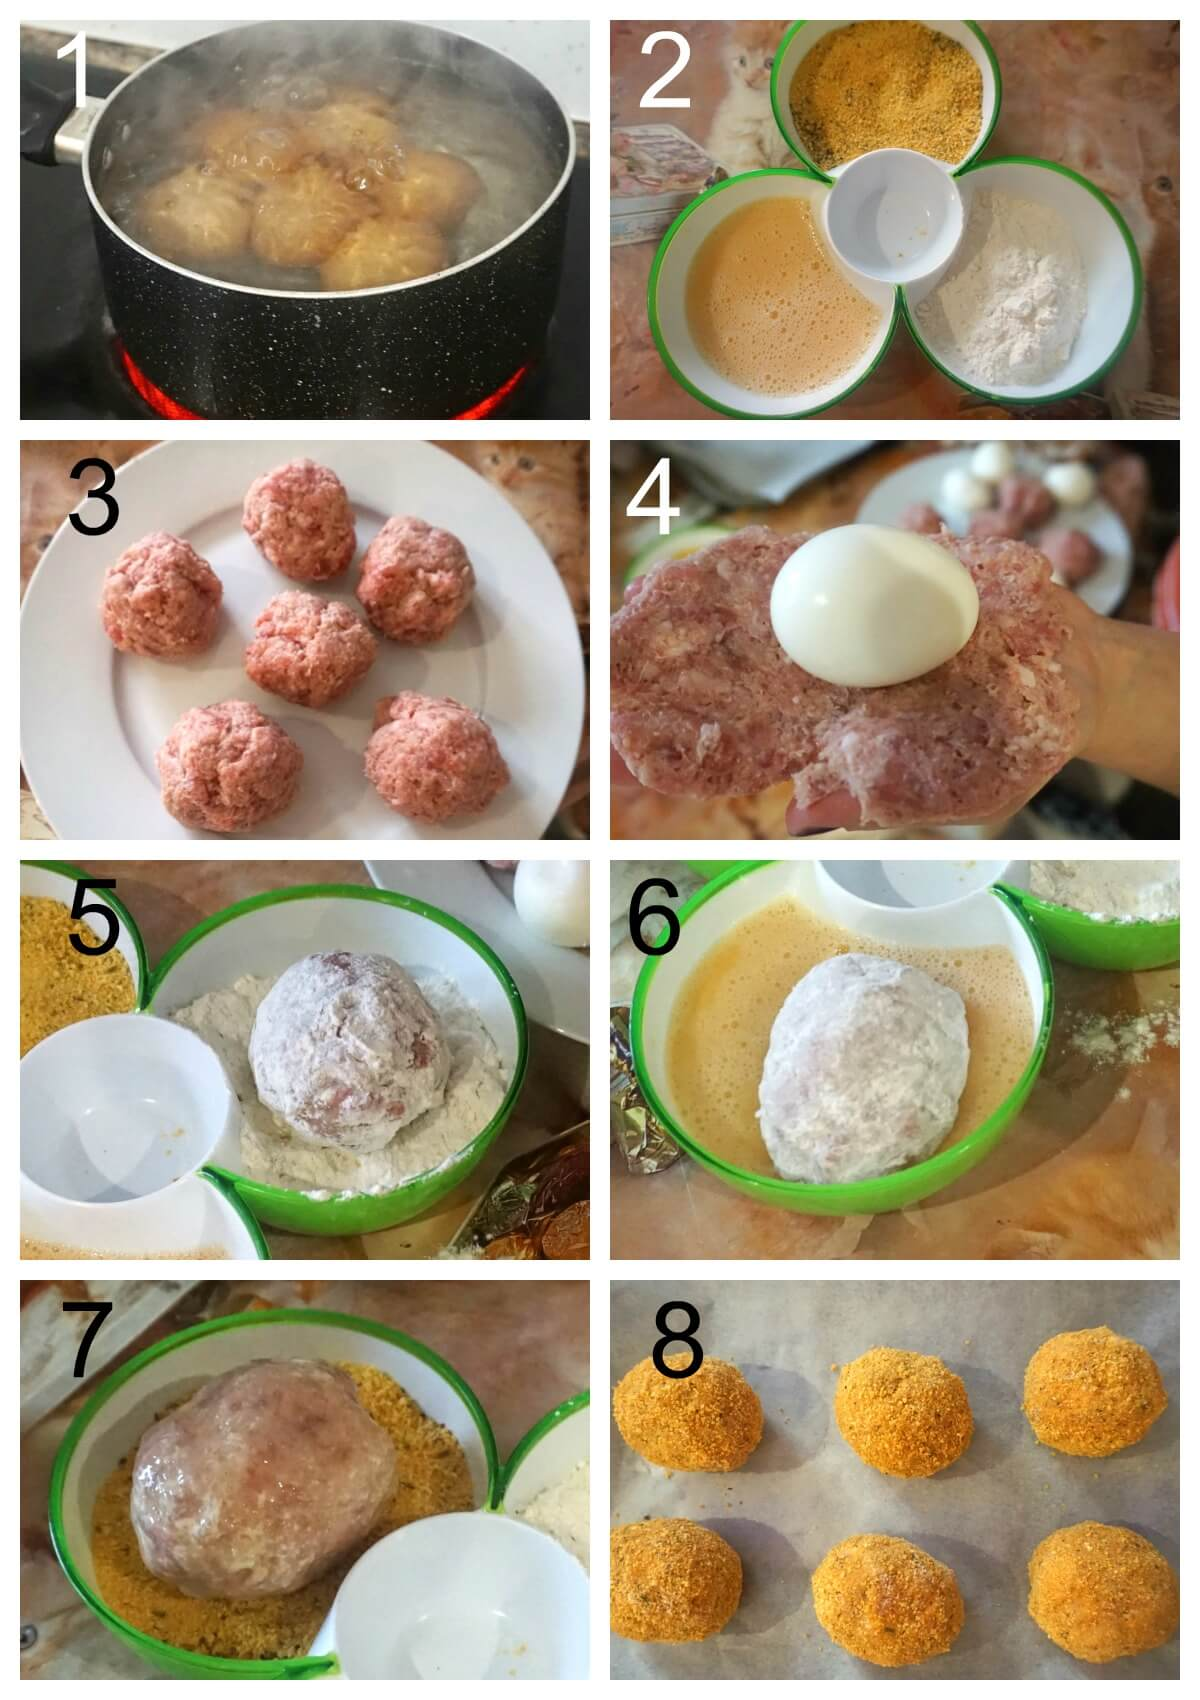 Collage of 8 photos to show how to make scotch eggs